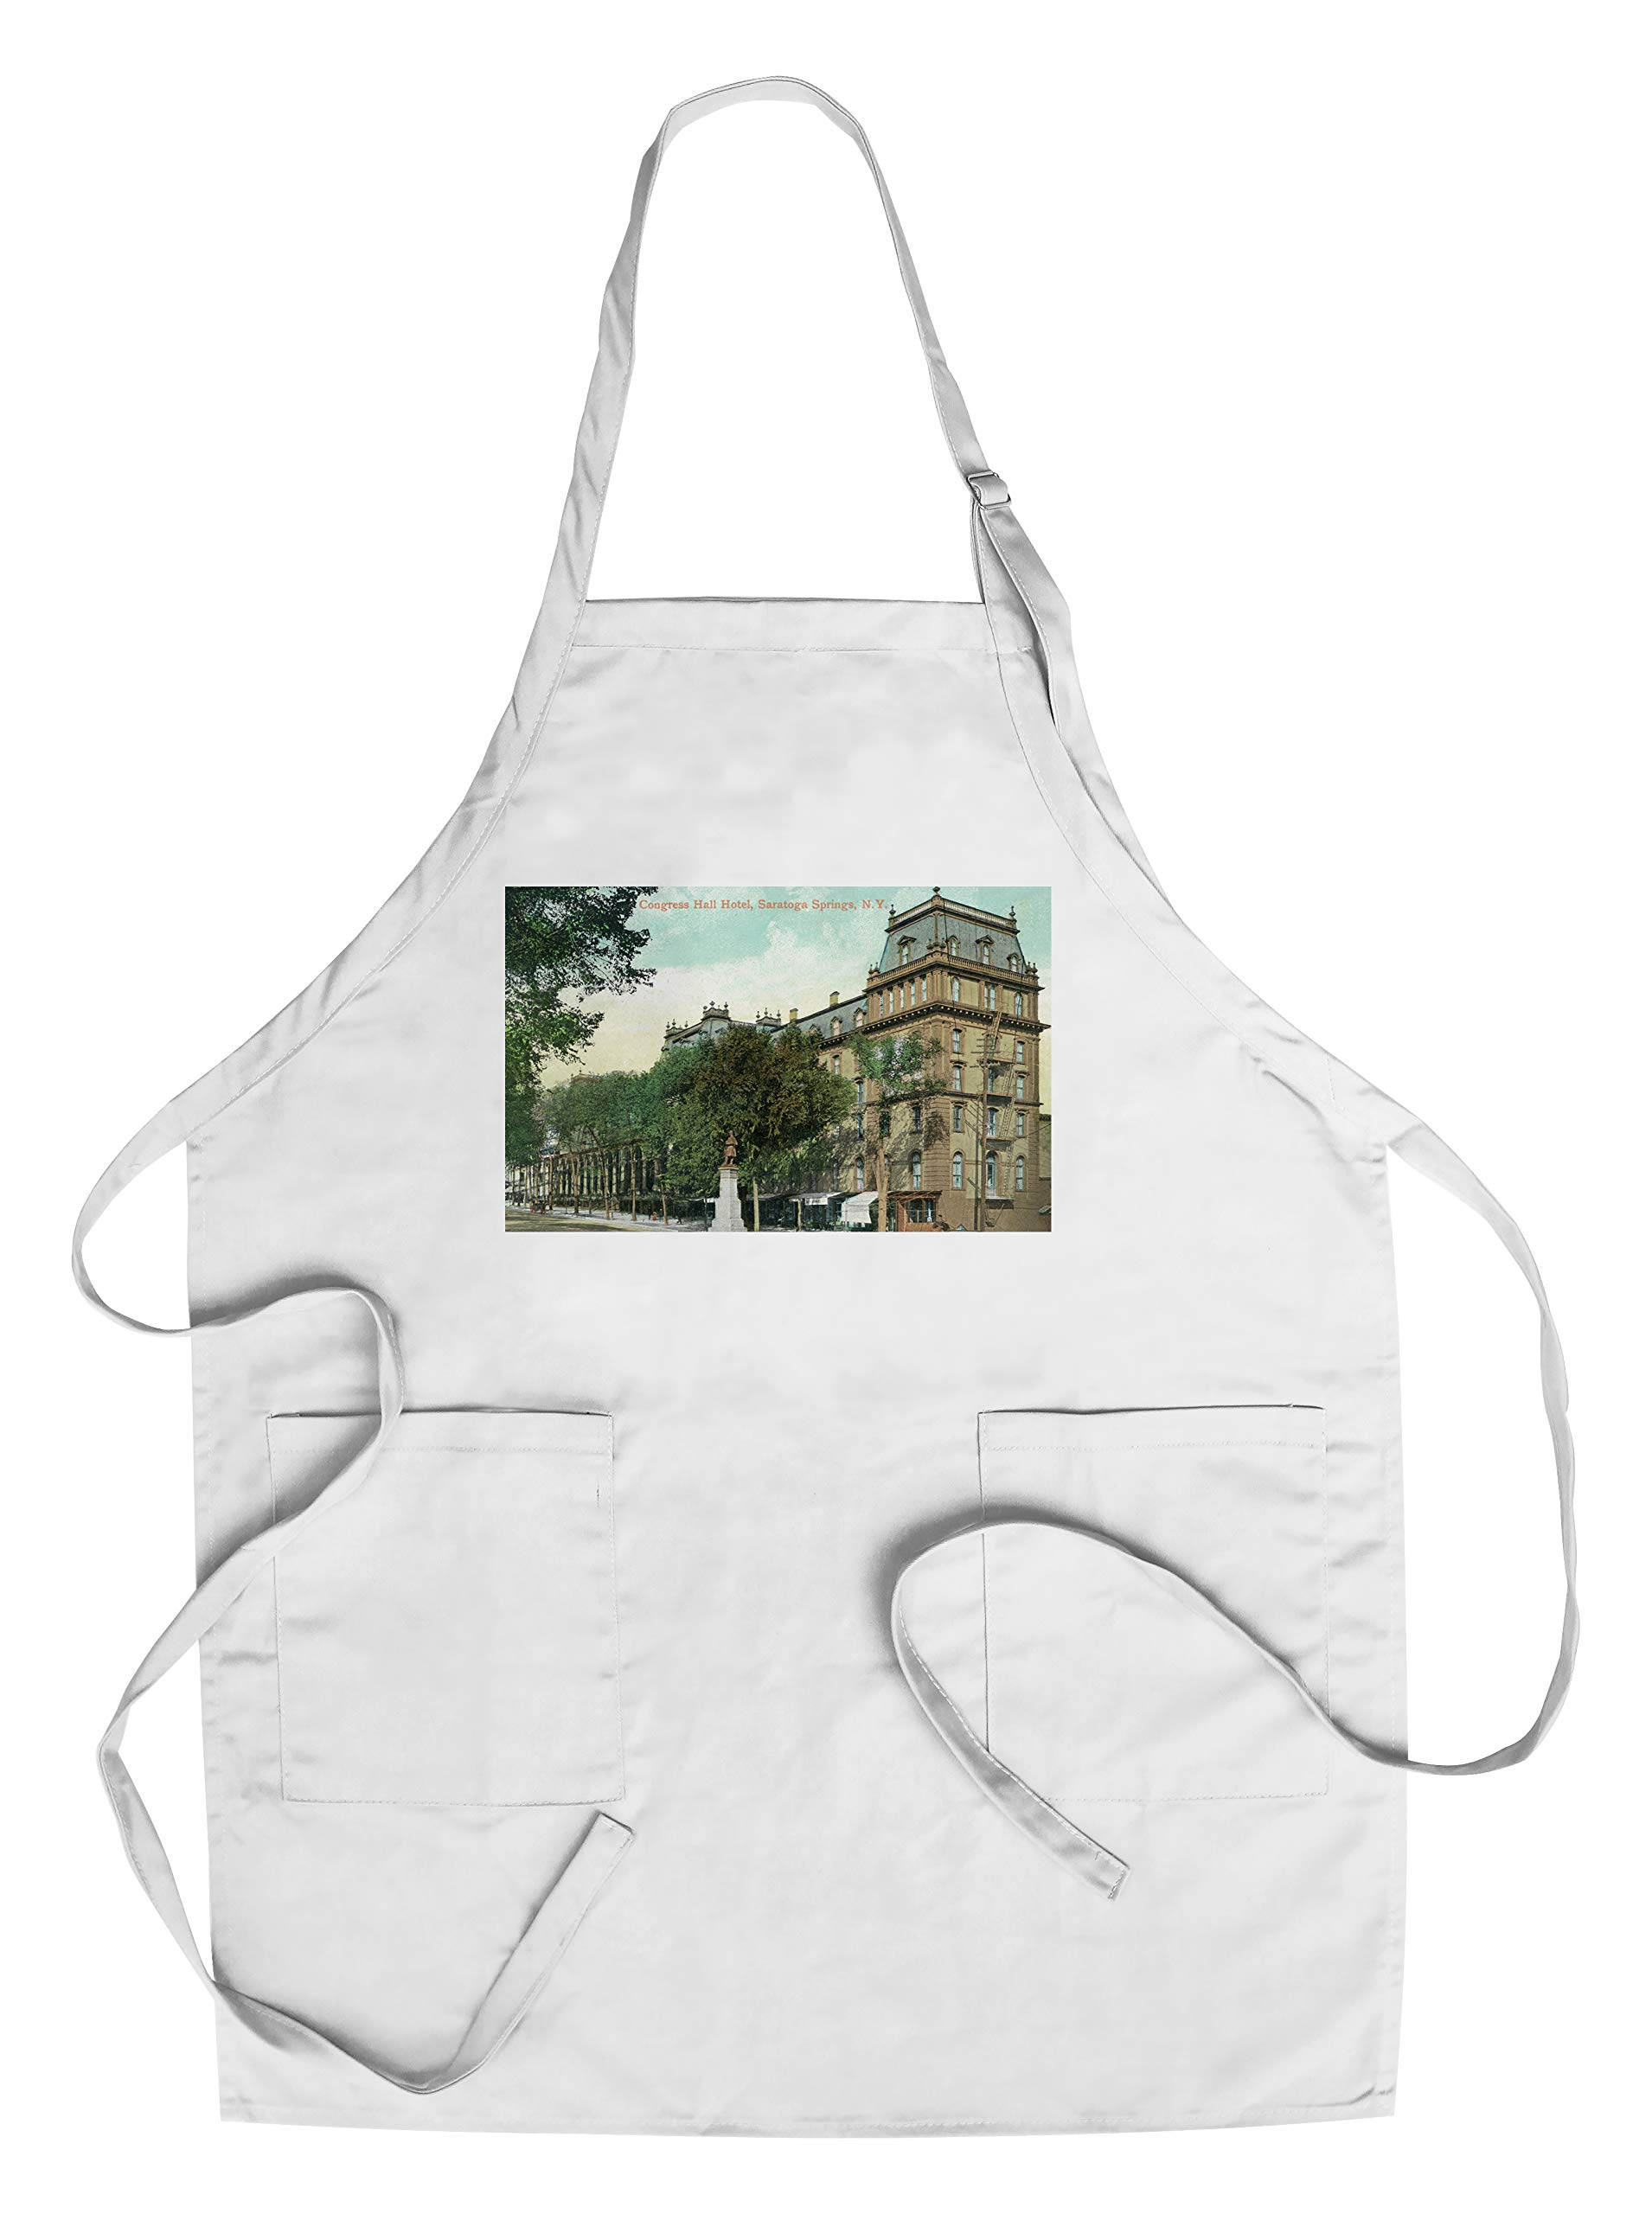 Saratoga Springs, New York - Congress Hall Hotel Exterior View (Cotton/Polyester Chef's Apron)